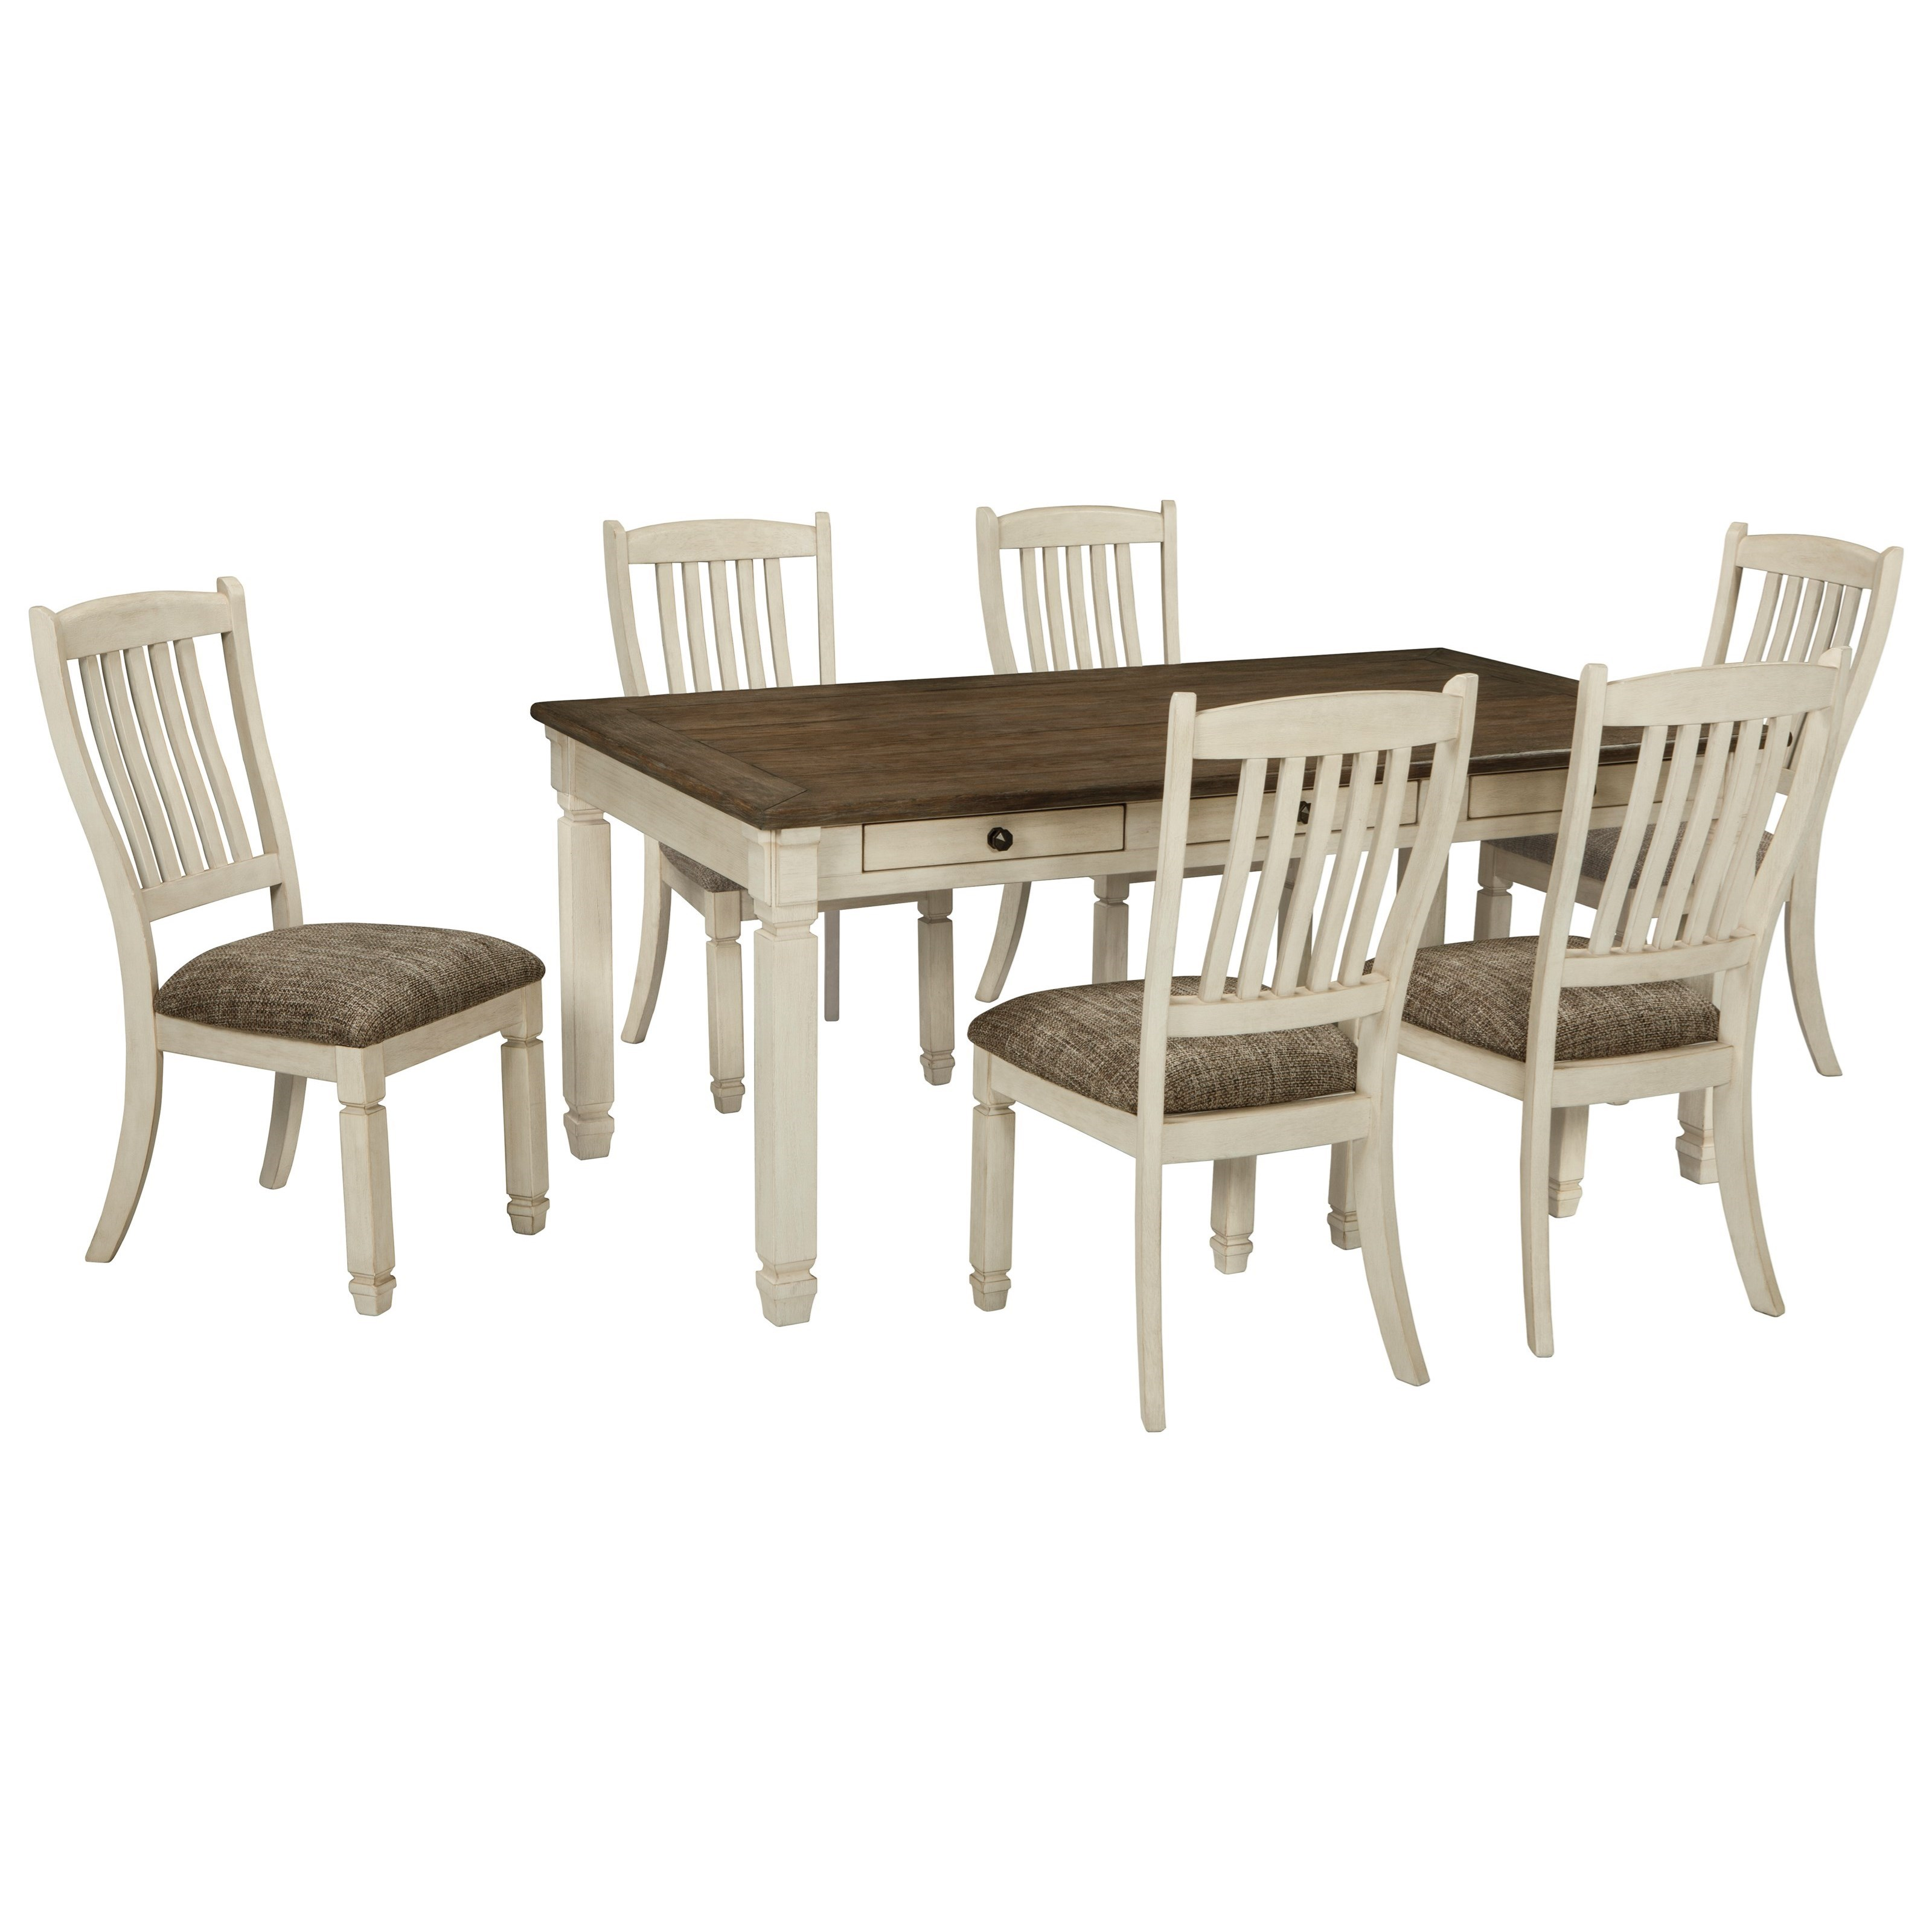 Bolanburg relaxed vintage 7 piece table and chair set for 7 piece dining set with bench